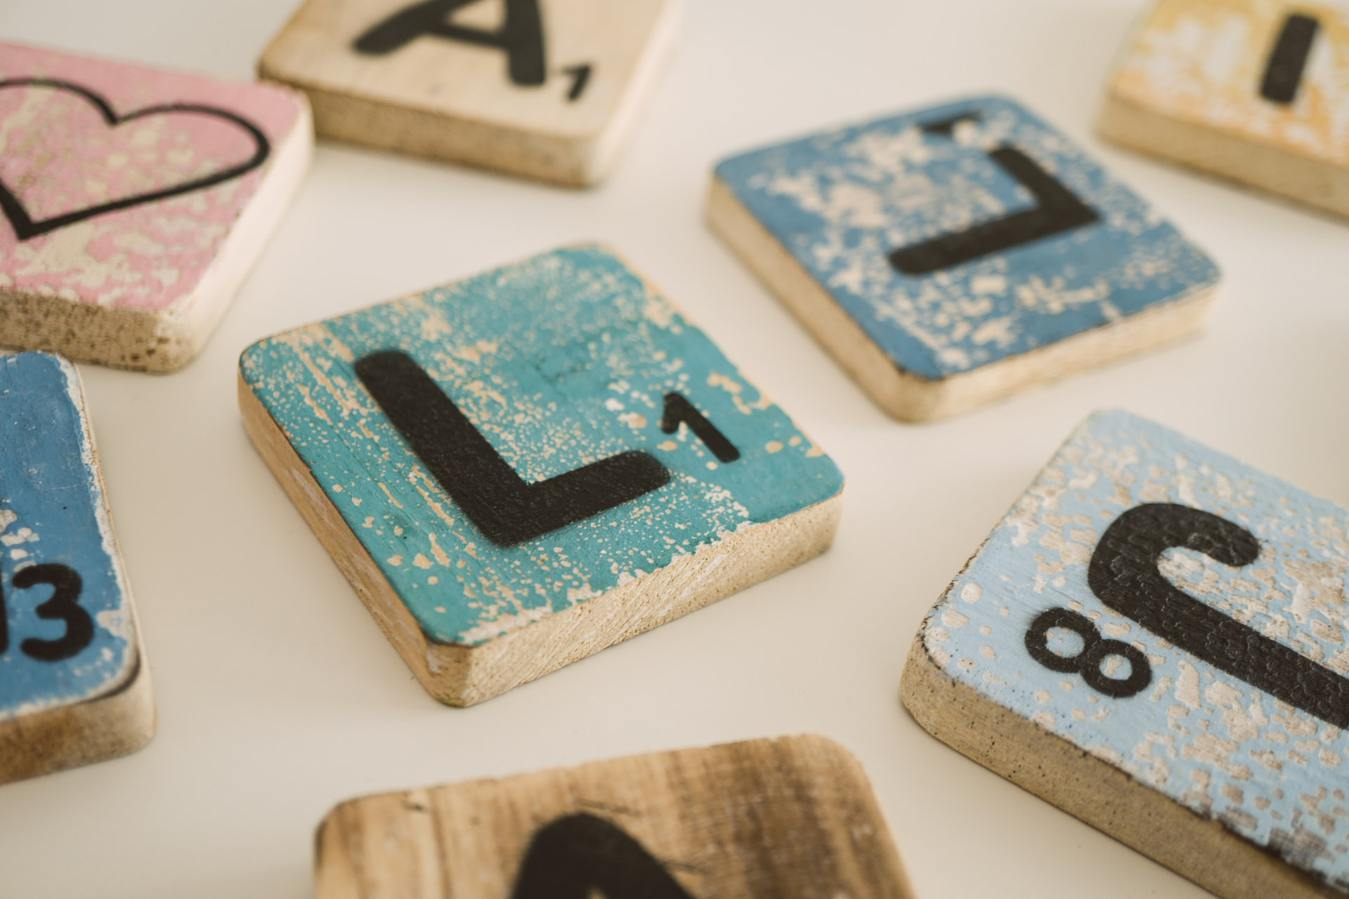 Wooden letter blocks from Scrabble